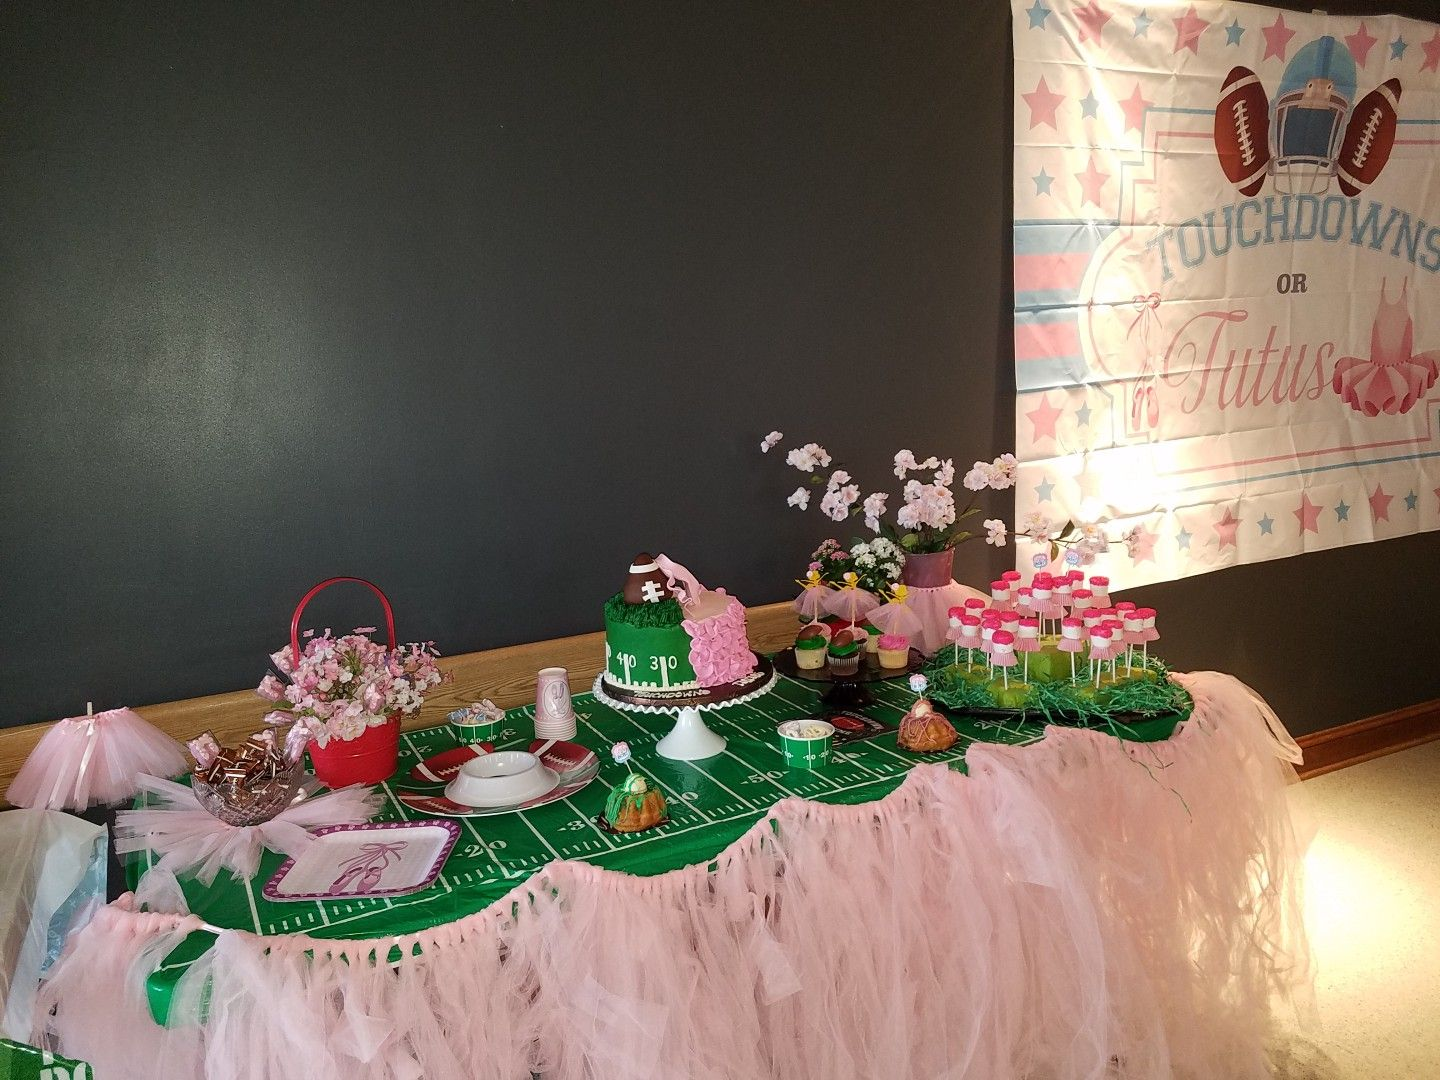 Beautiful Baby Gender Reveal Touchdowns Or Tutus Tutus Gender Reveal Gender Reveal Party Gender Reveal Decorations